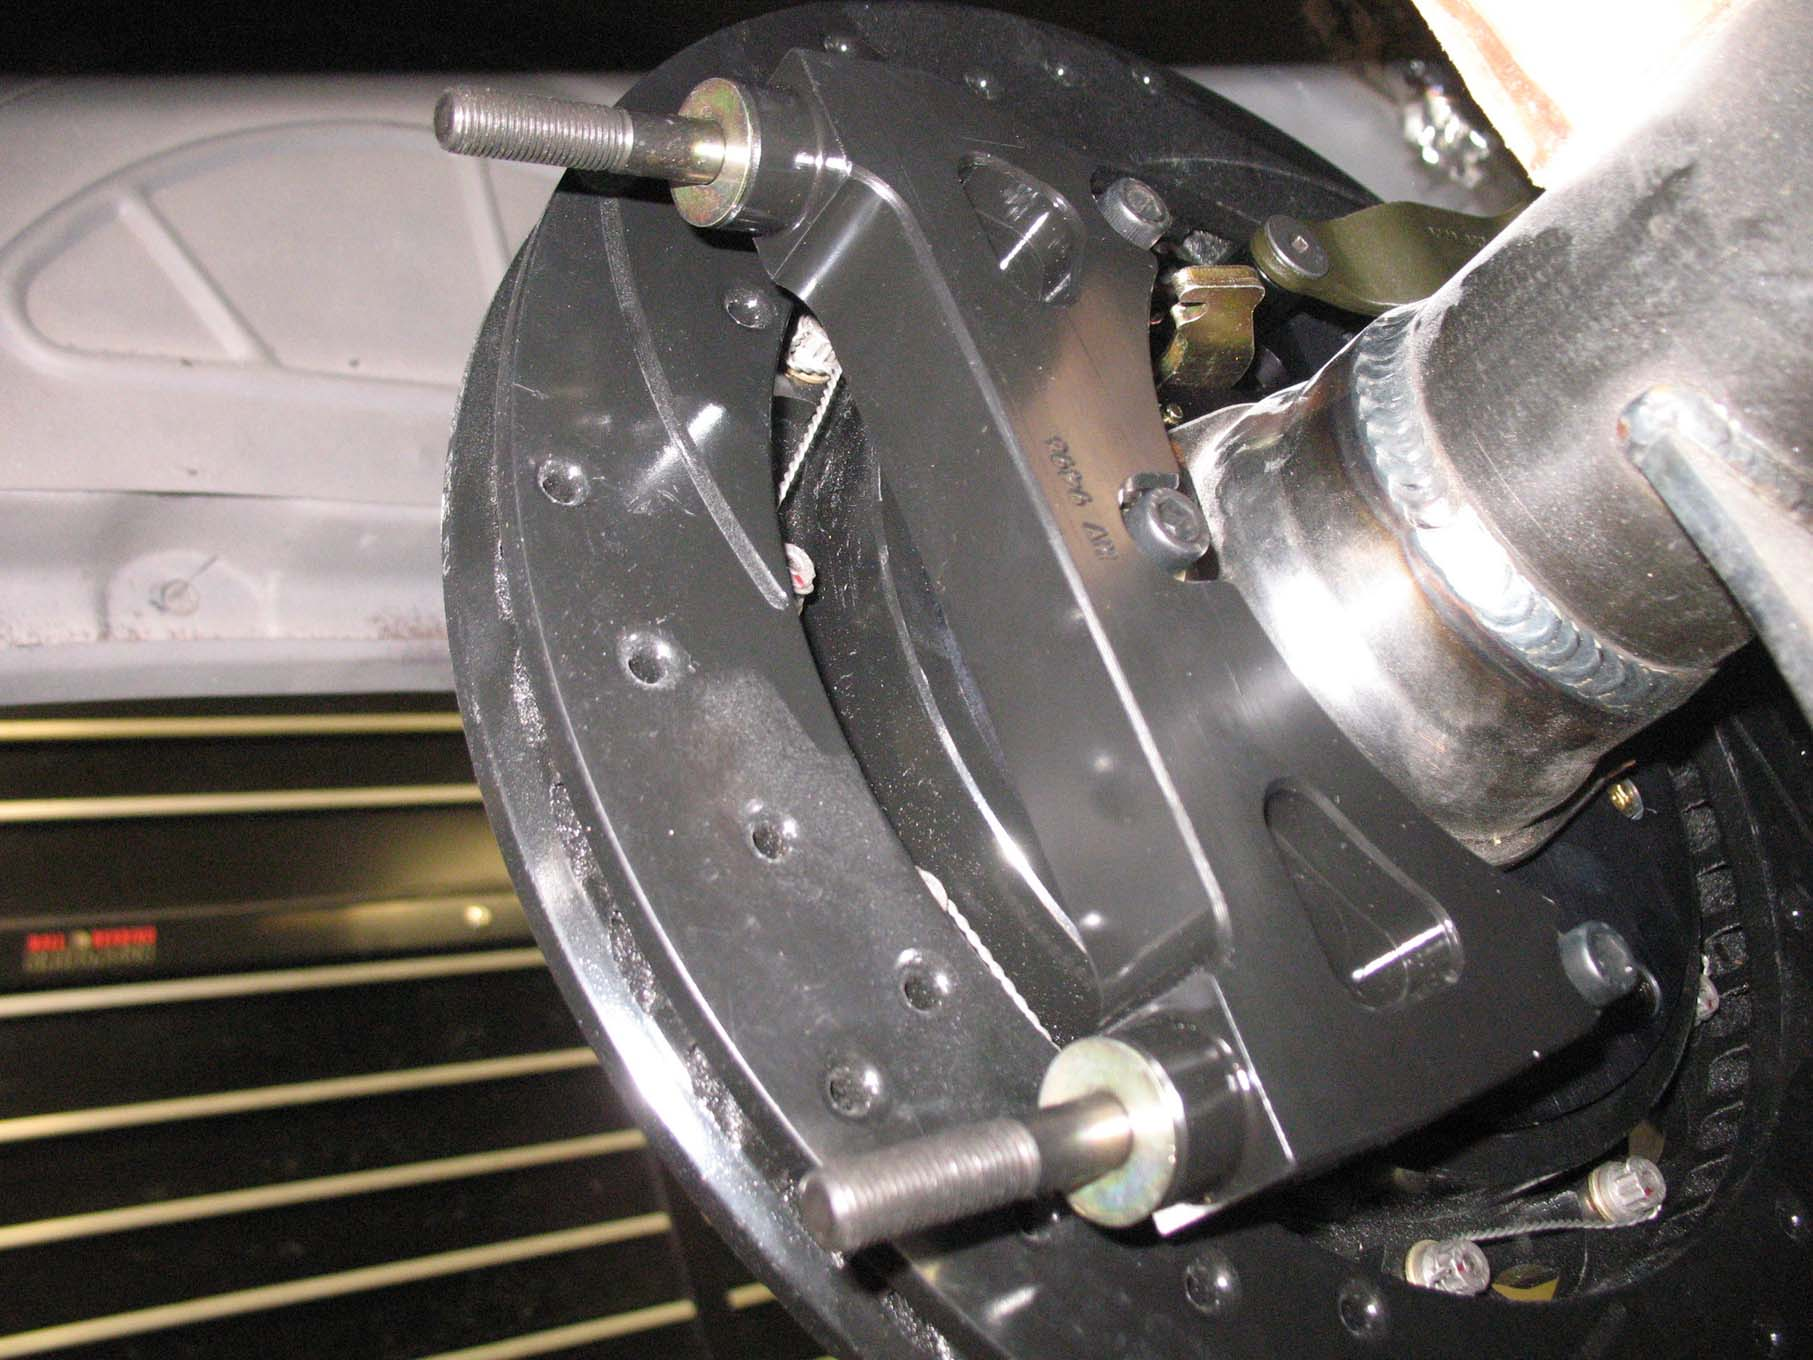 As in the front, radial caliper mounts are used. Note the shims that have been installed on the studs.